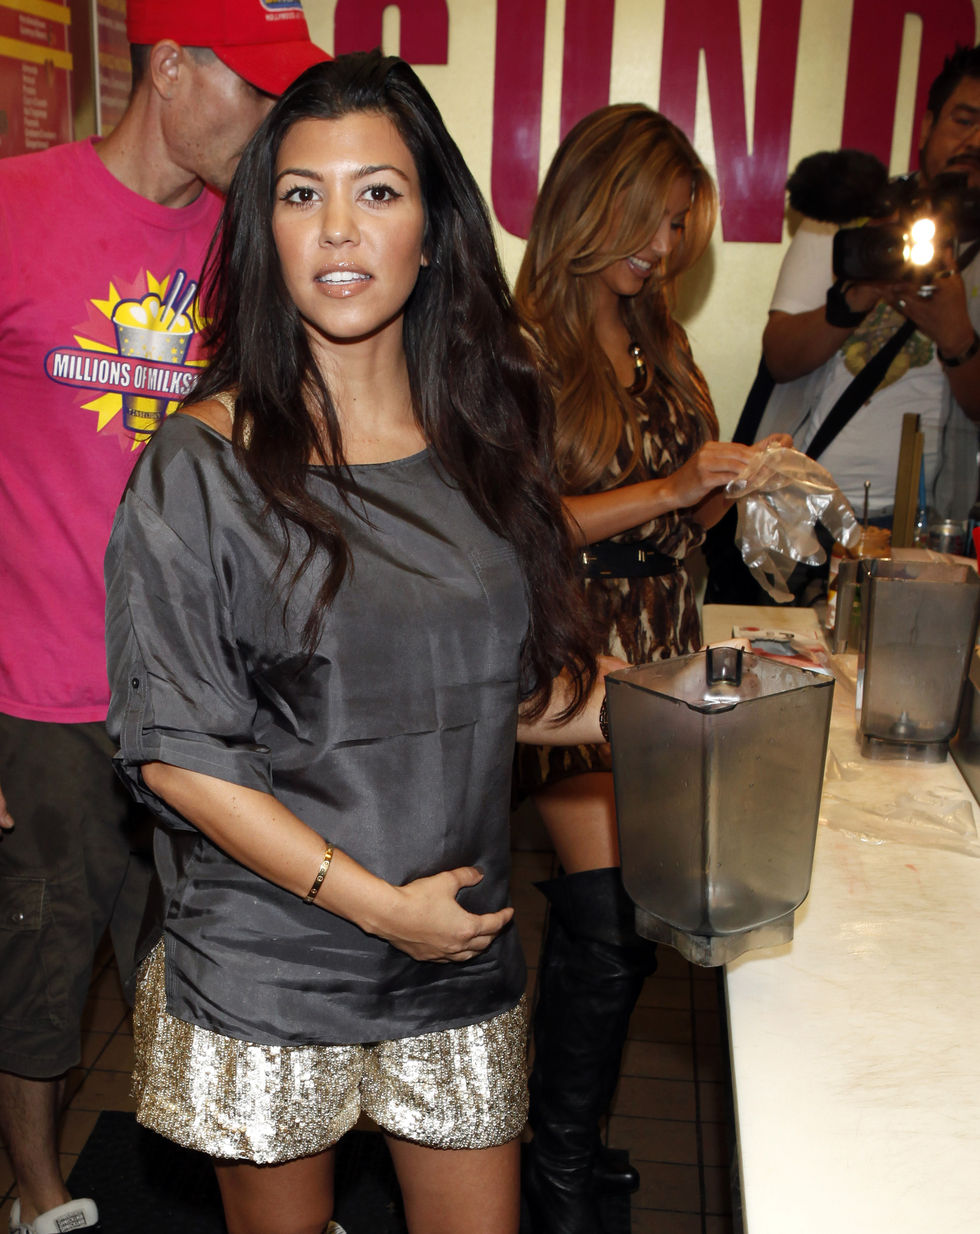 kim-and-kourtney-kardashian-at-millions-of-milkshakes-in-los-angeles-12